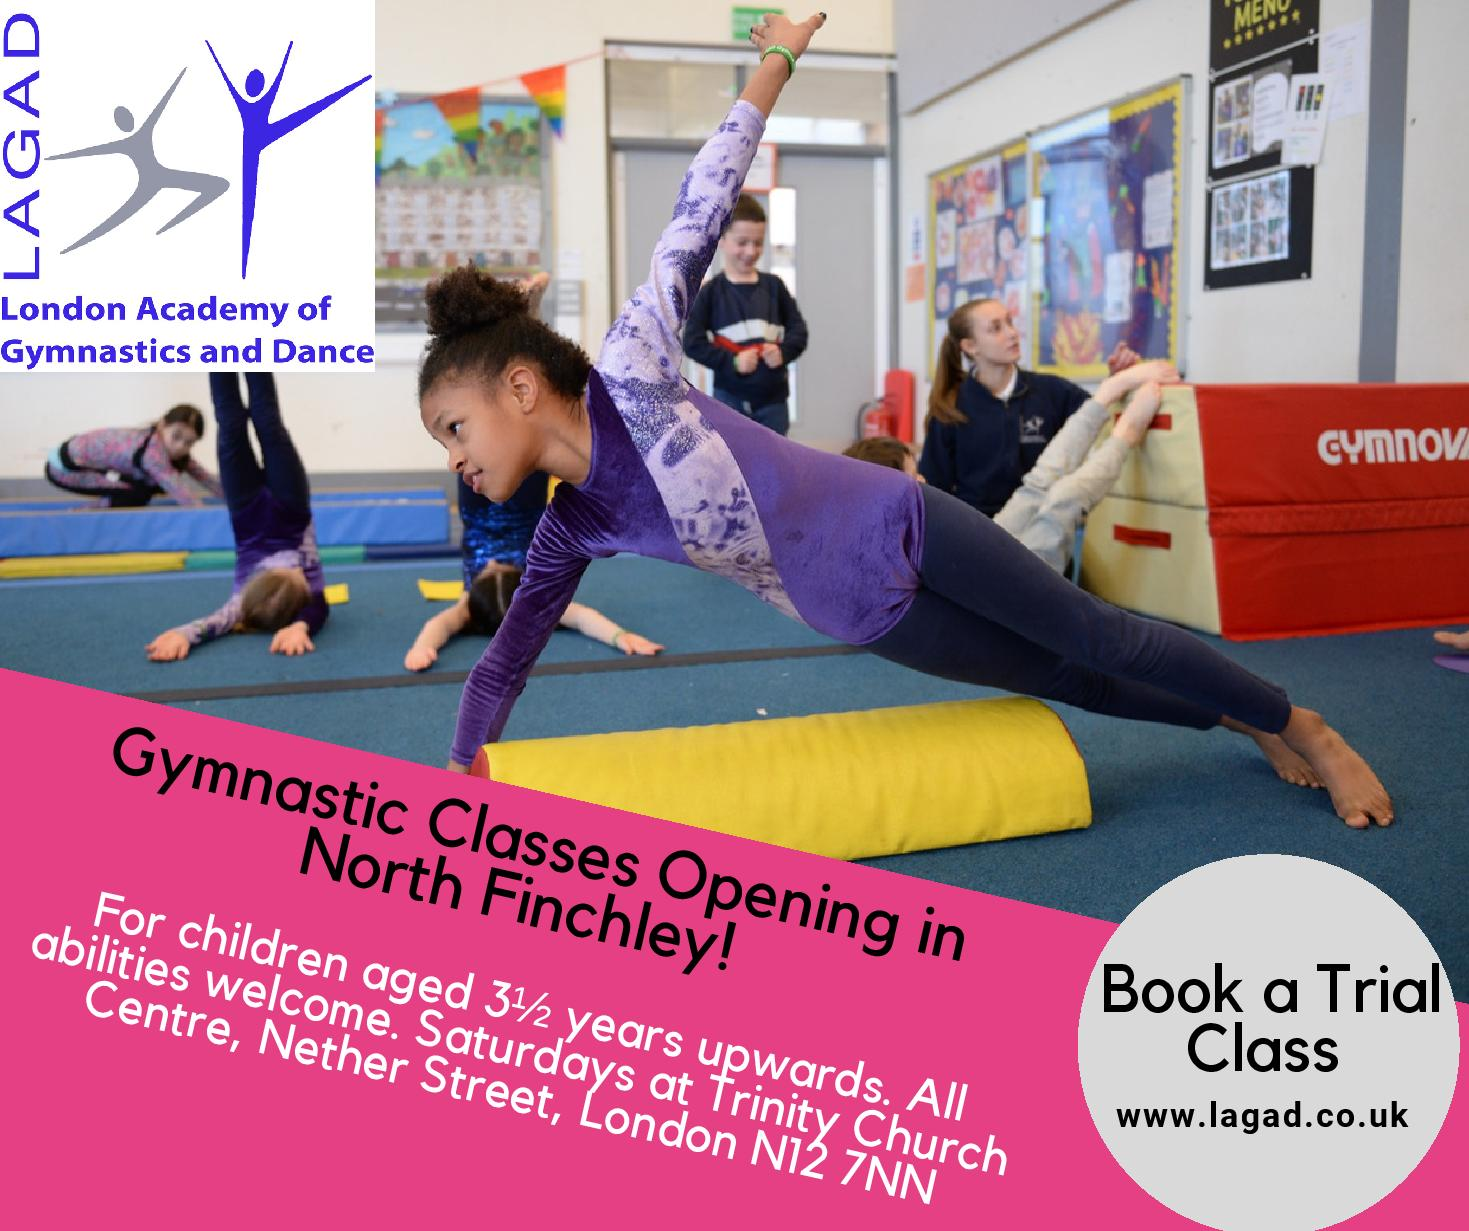 Gymnastics classes in North Finchley